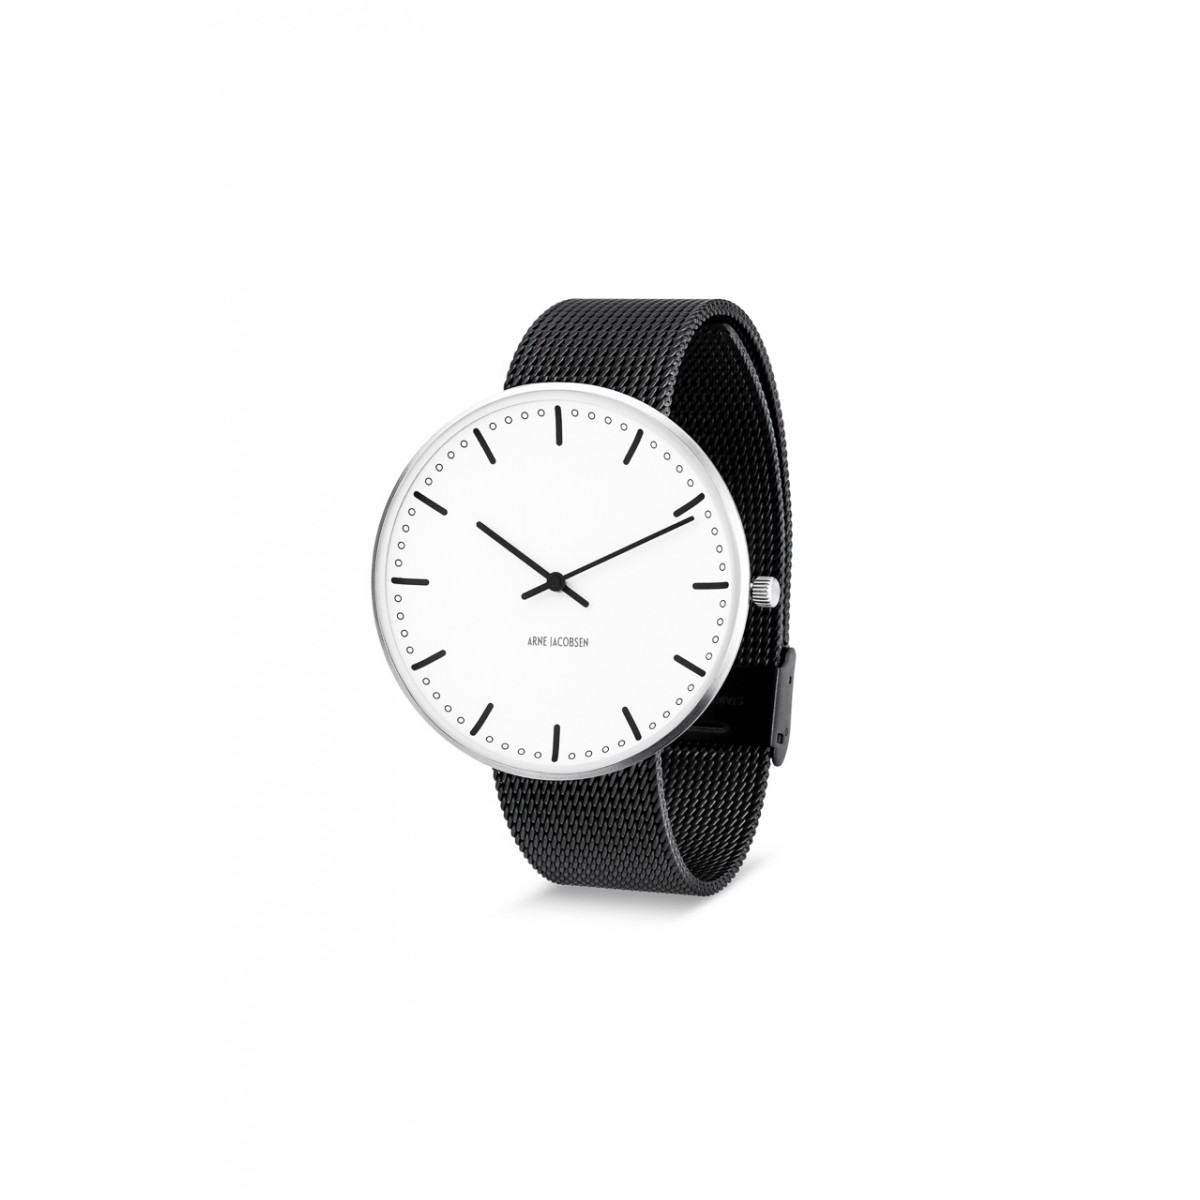 Arne Jacobsen armbåndsur CITY HALL 34, 40 and 46 MM sort rem/hvid skive-3